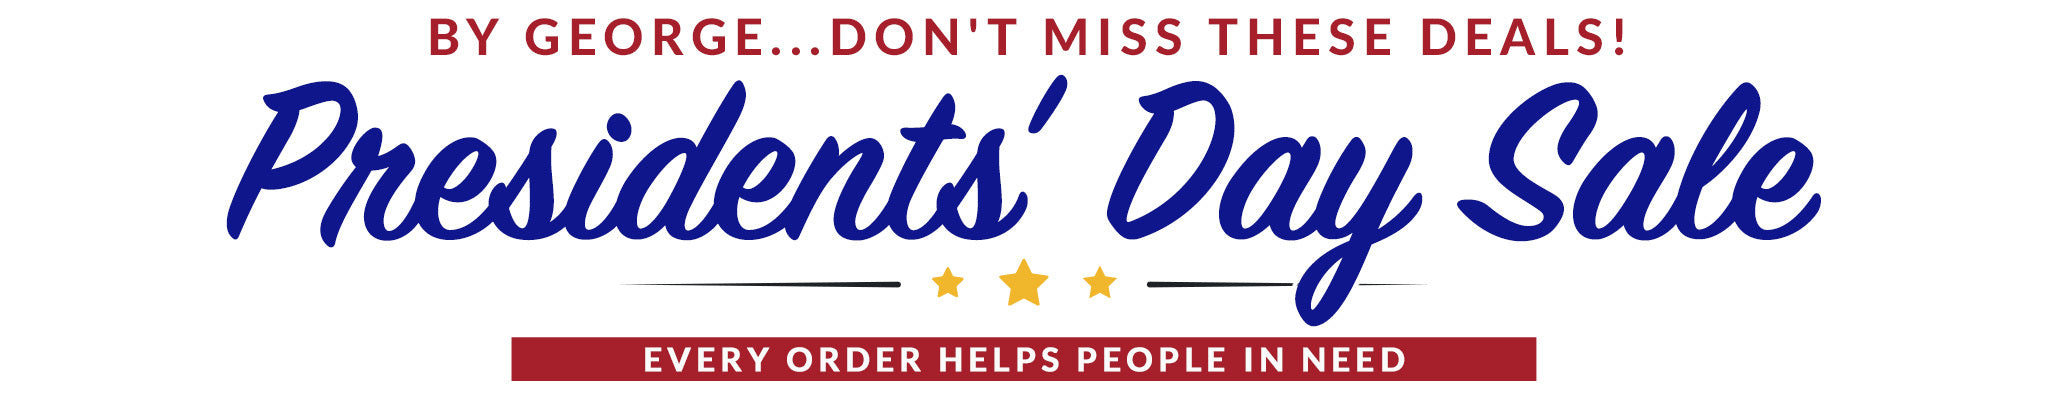 Presidents' Day Sale. Save your Benjamins! Every order helps people in need.